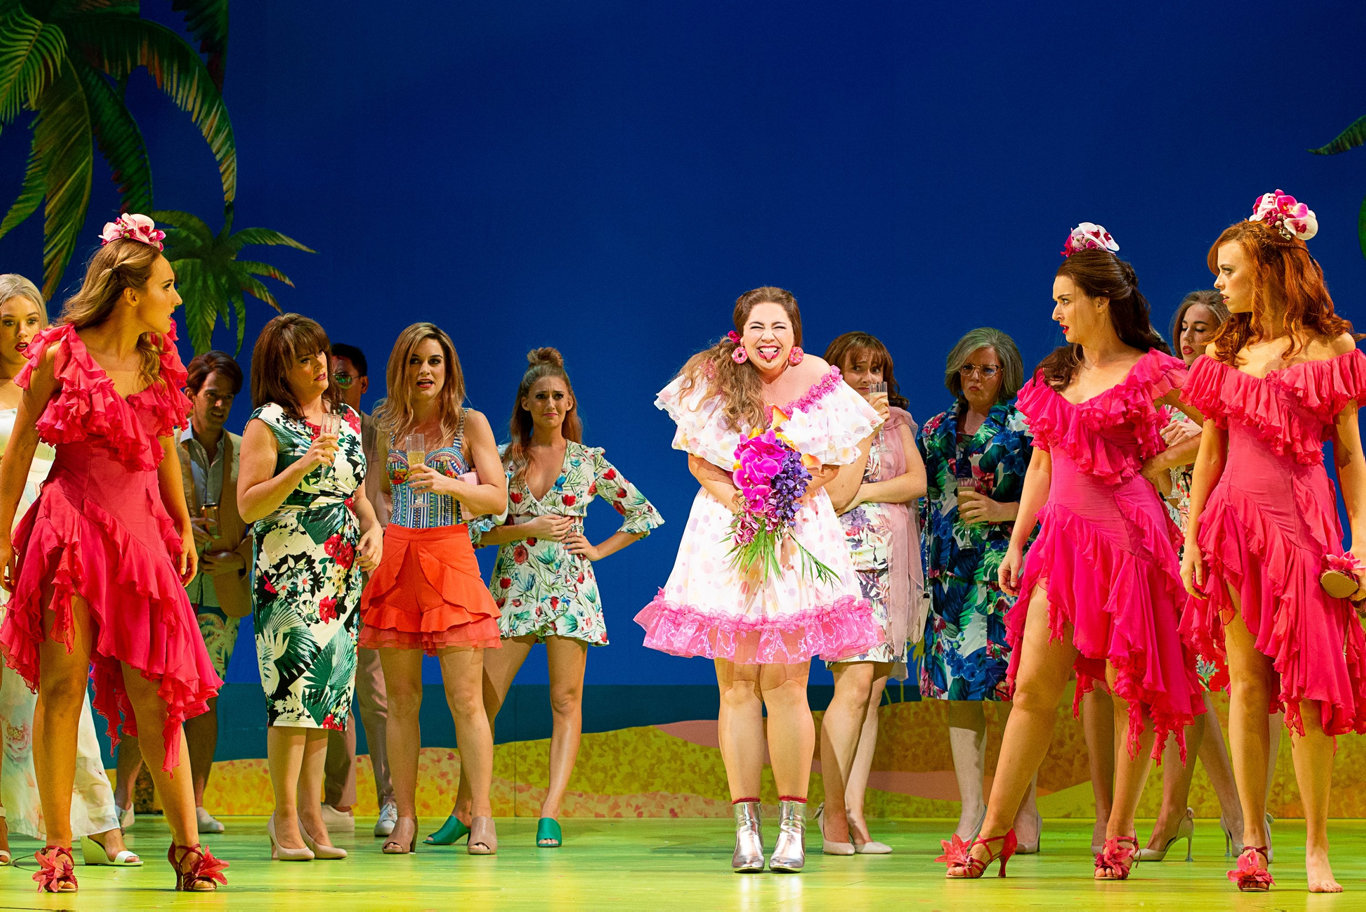 Natalie Abbott, centre, stars in her first leading role as Muriel in Muriel's Wedding the Musical.